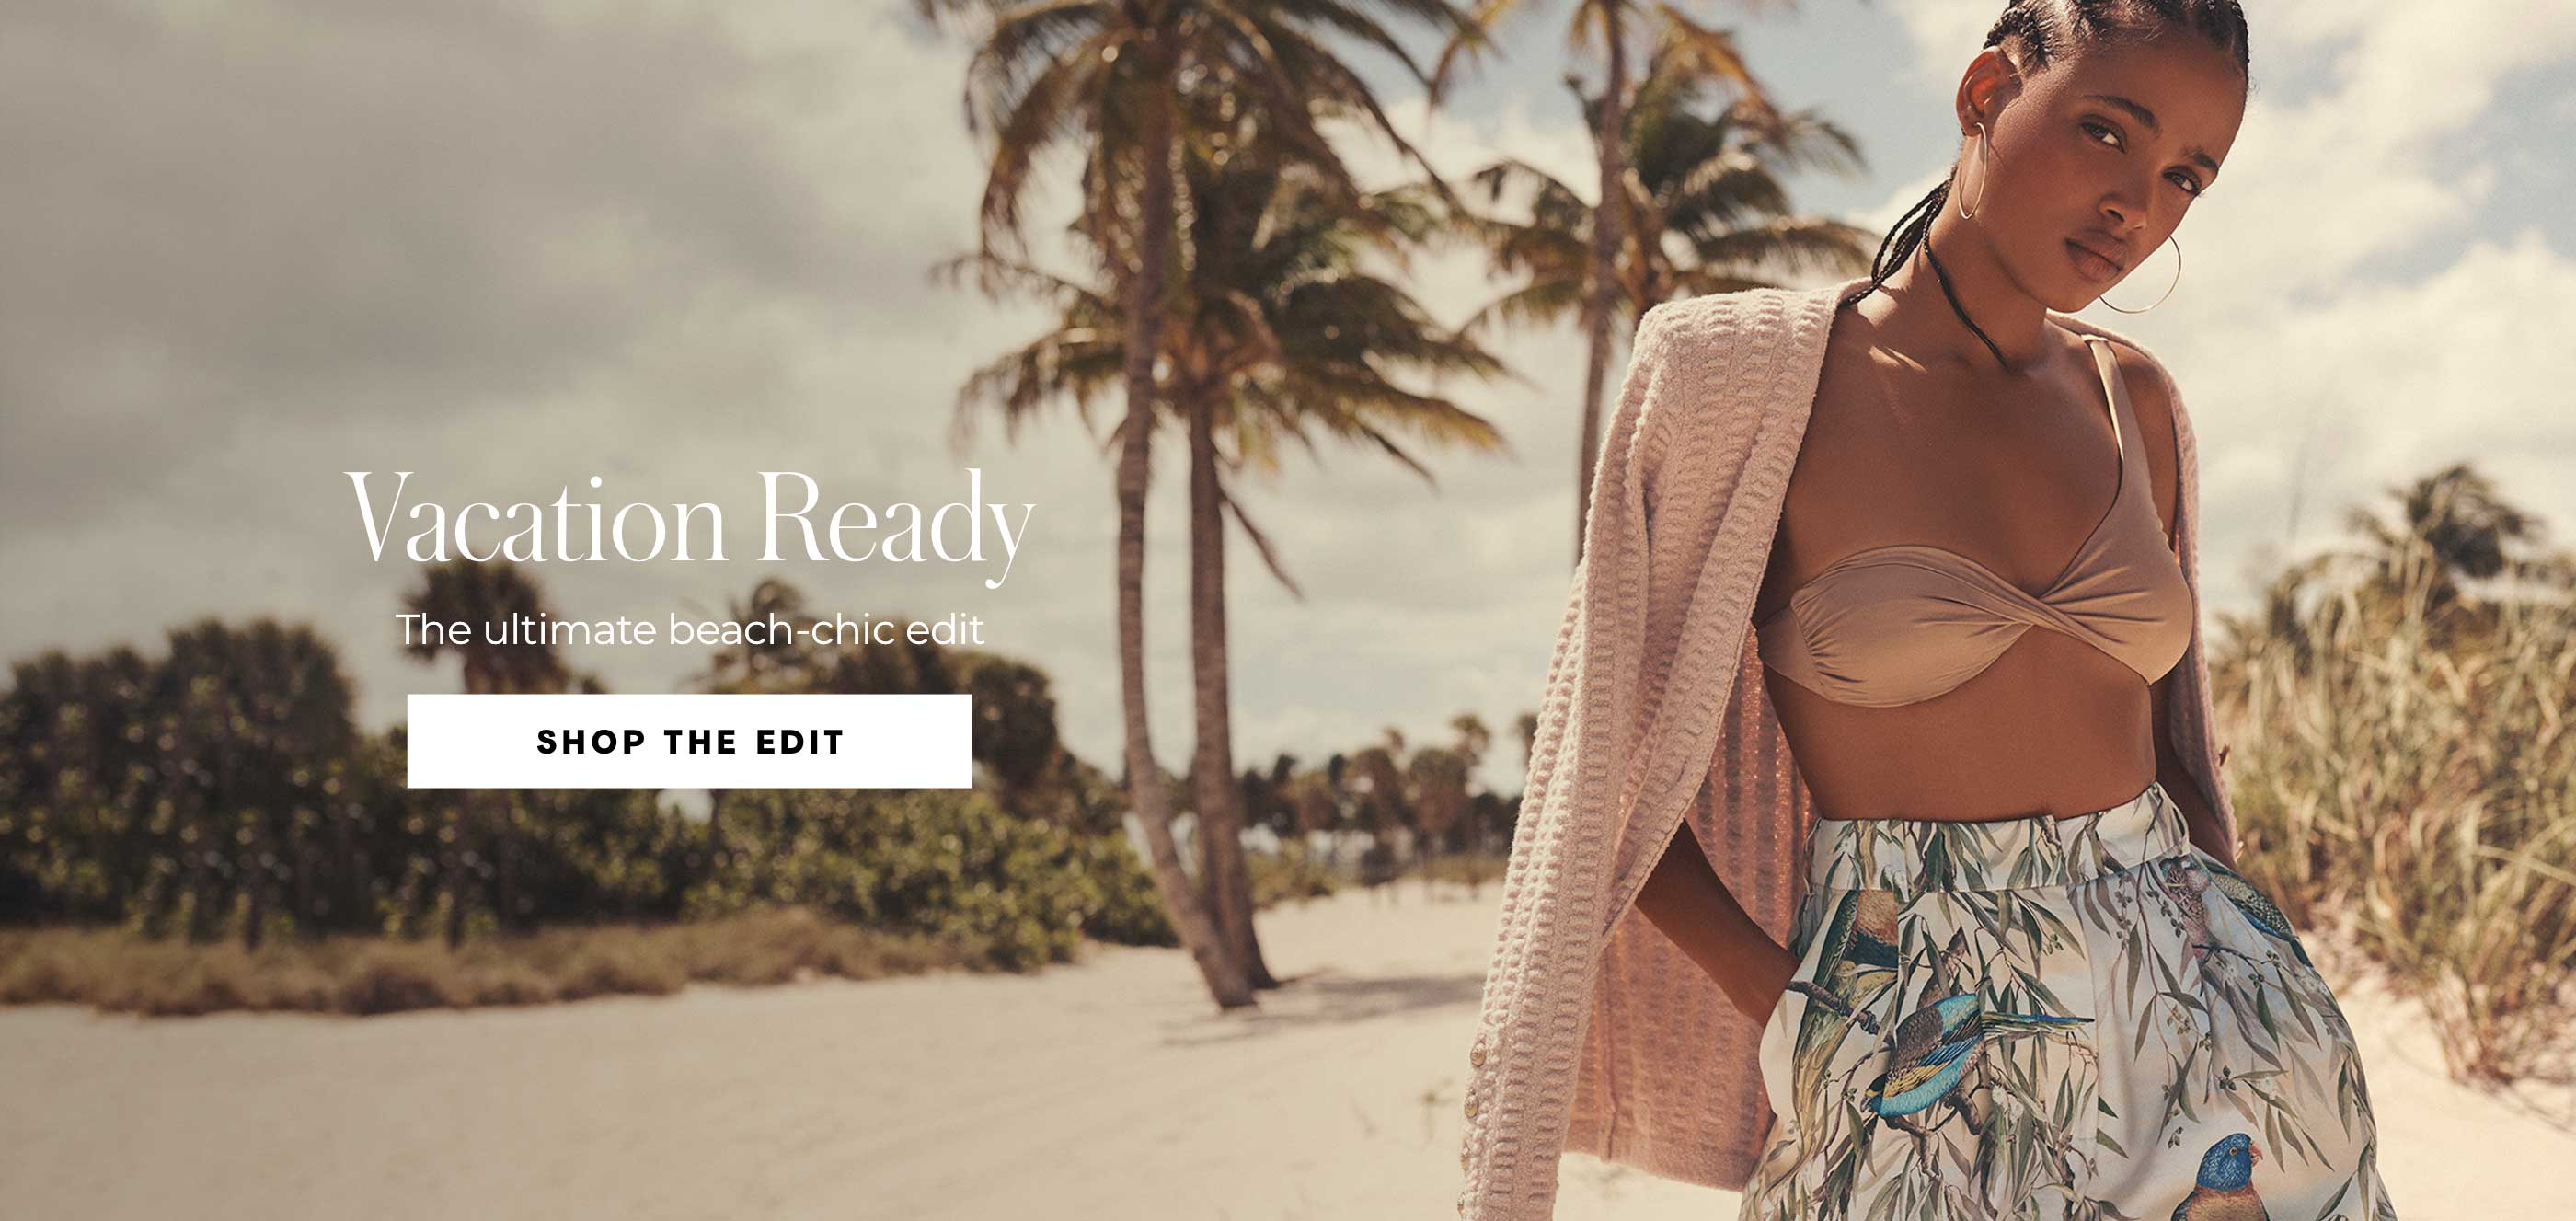 Vacation Ready The ultimate beach-chic edit